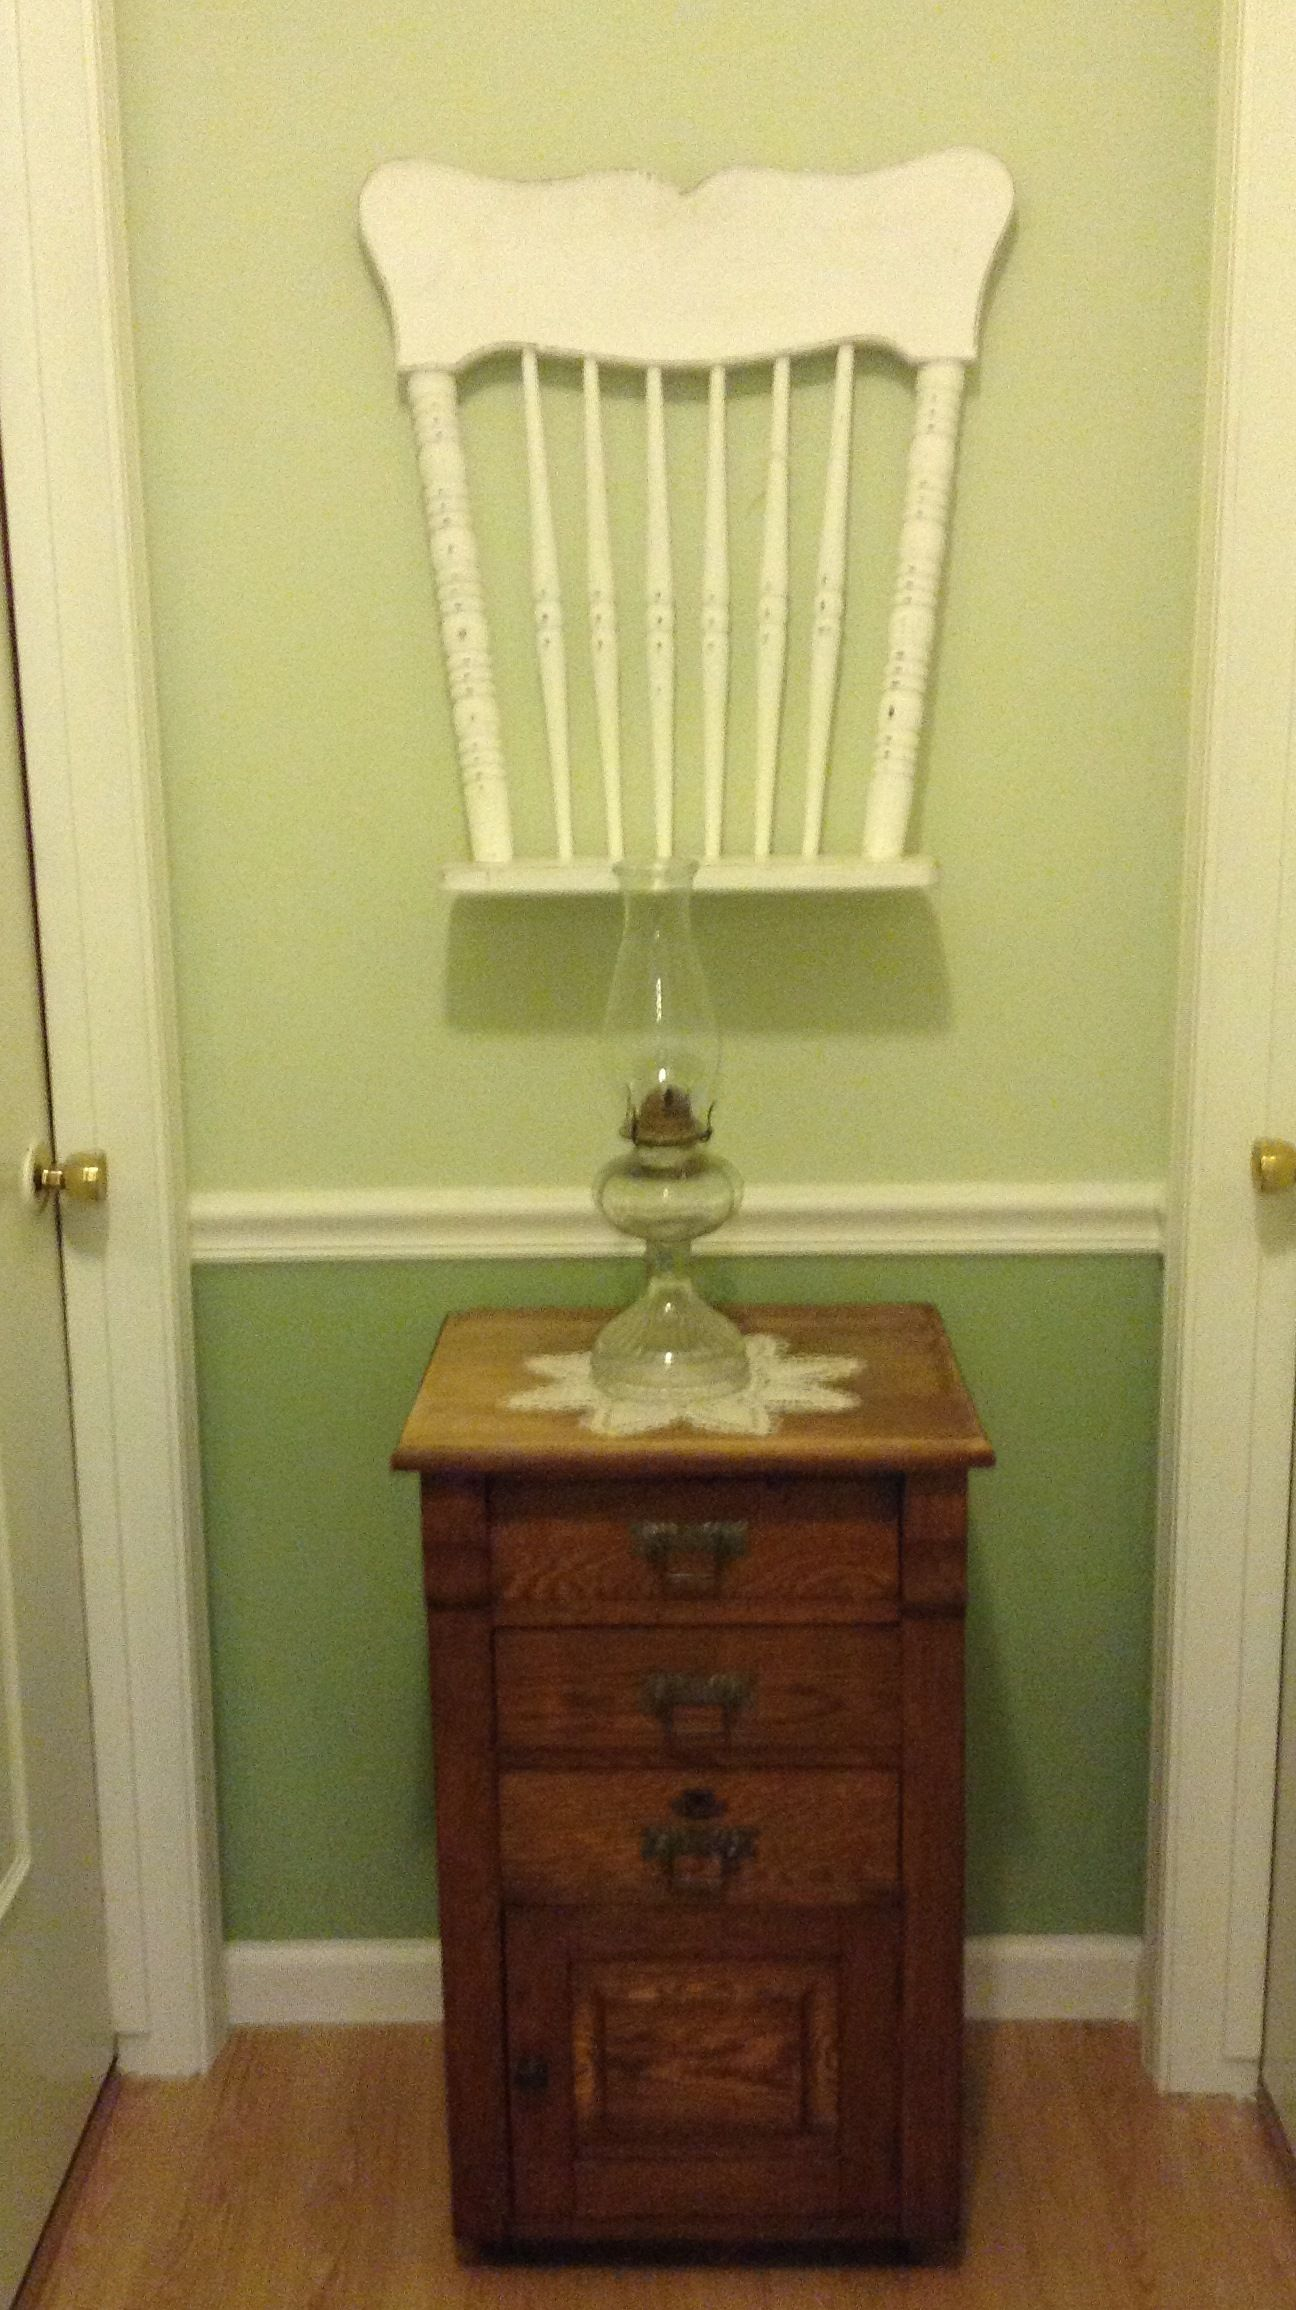 Shabby chic chair shelf found at monches farm with my mothers